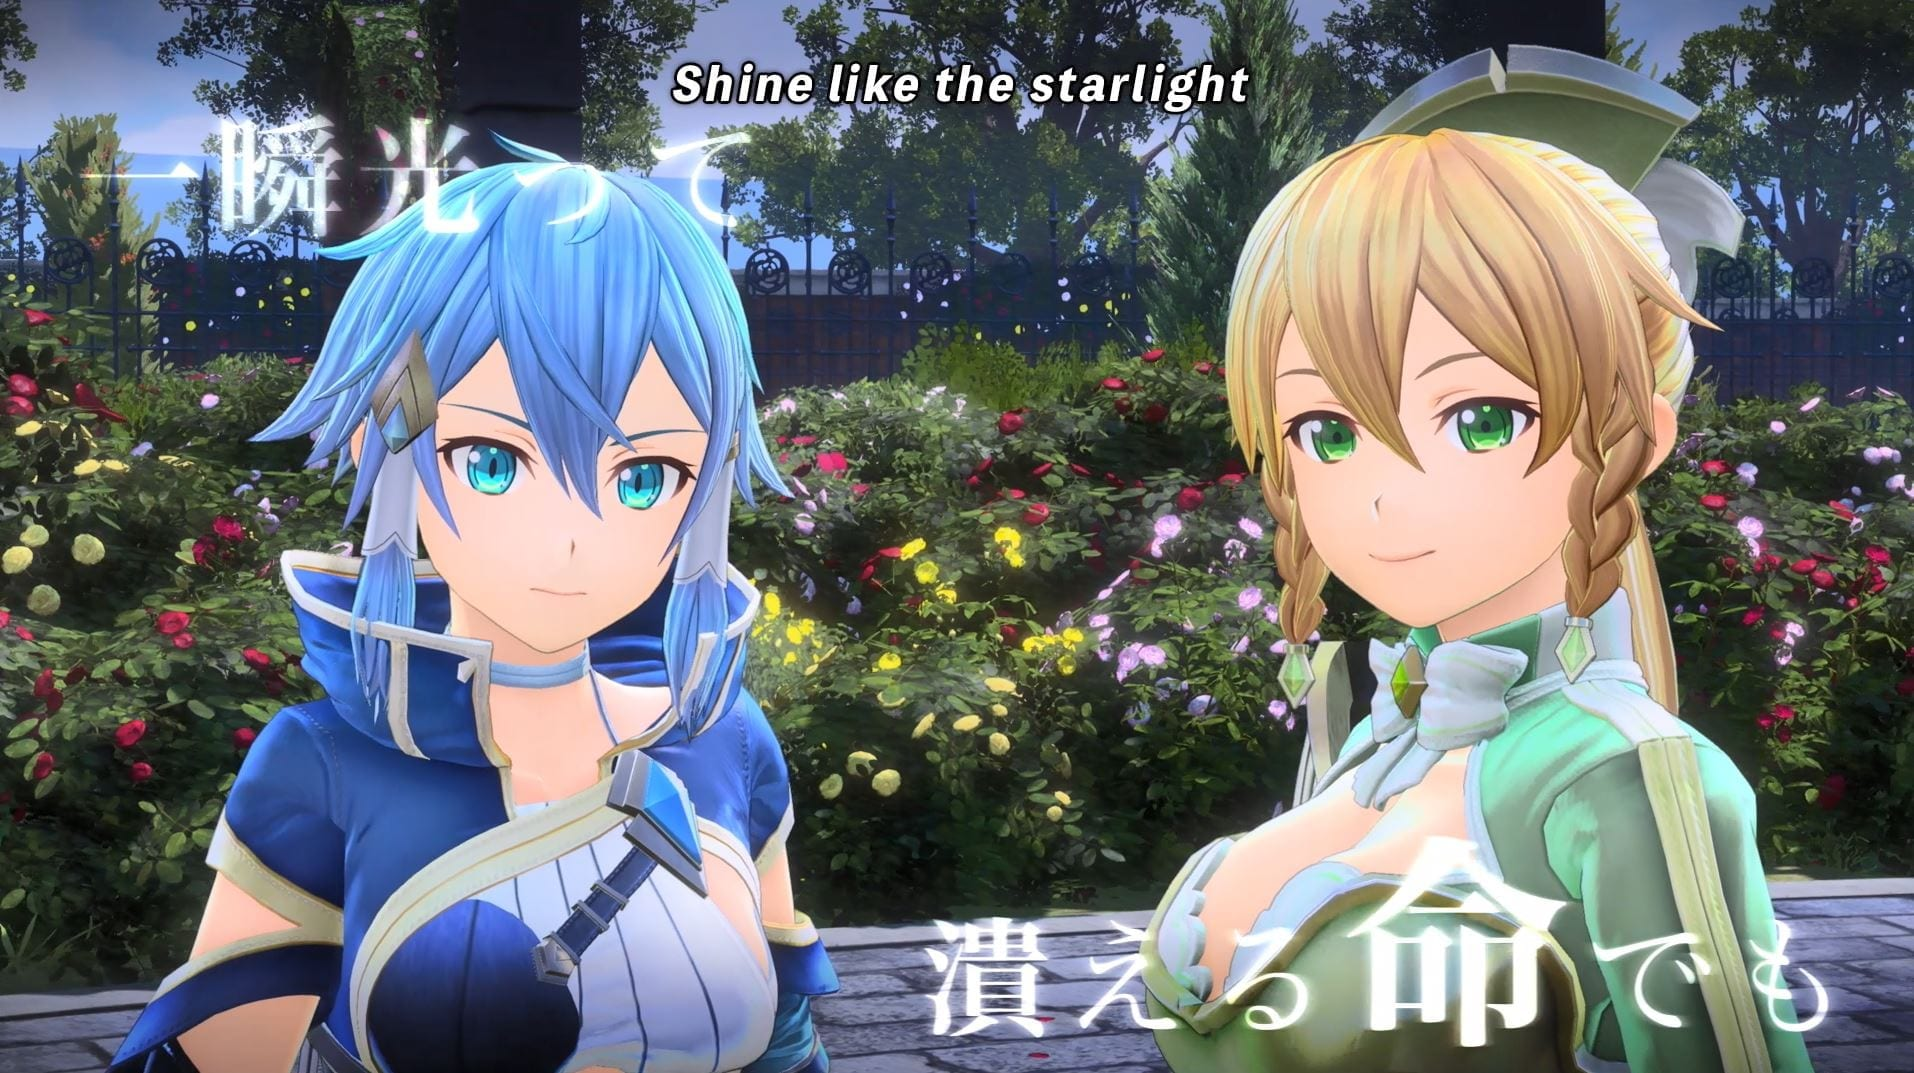 Sinon, Leafa, Silica and Lisbeth will make their appearance in SWORD ART ONLINE Alicization Lycoris!